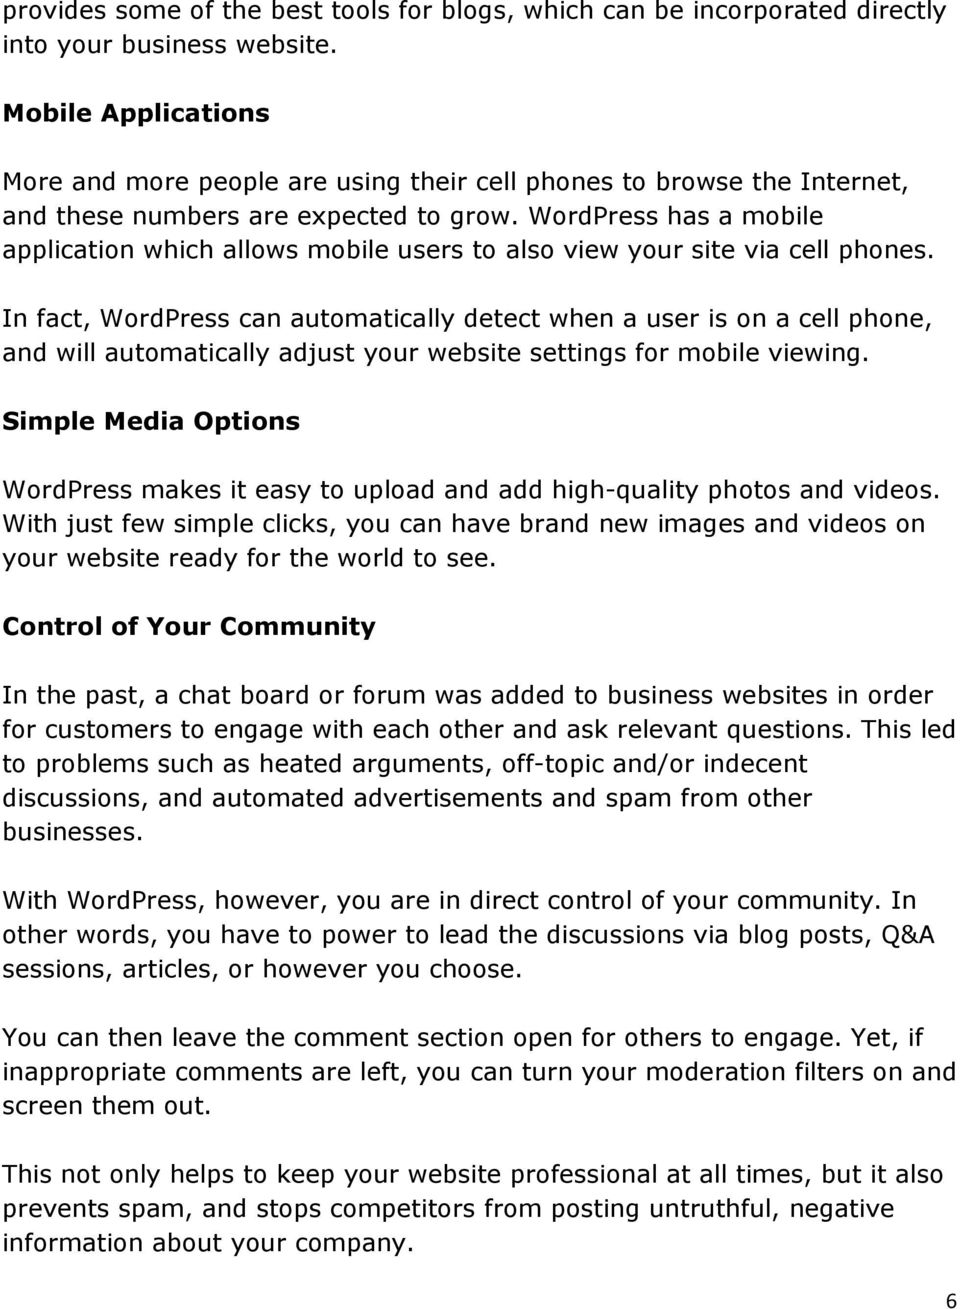 WordPress has a mobile application which allows mobile users to also view your site via cell phones.